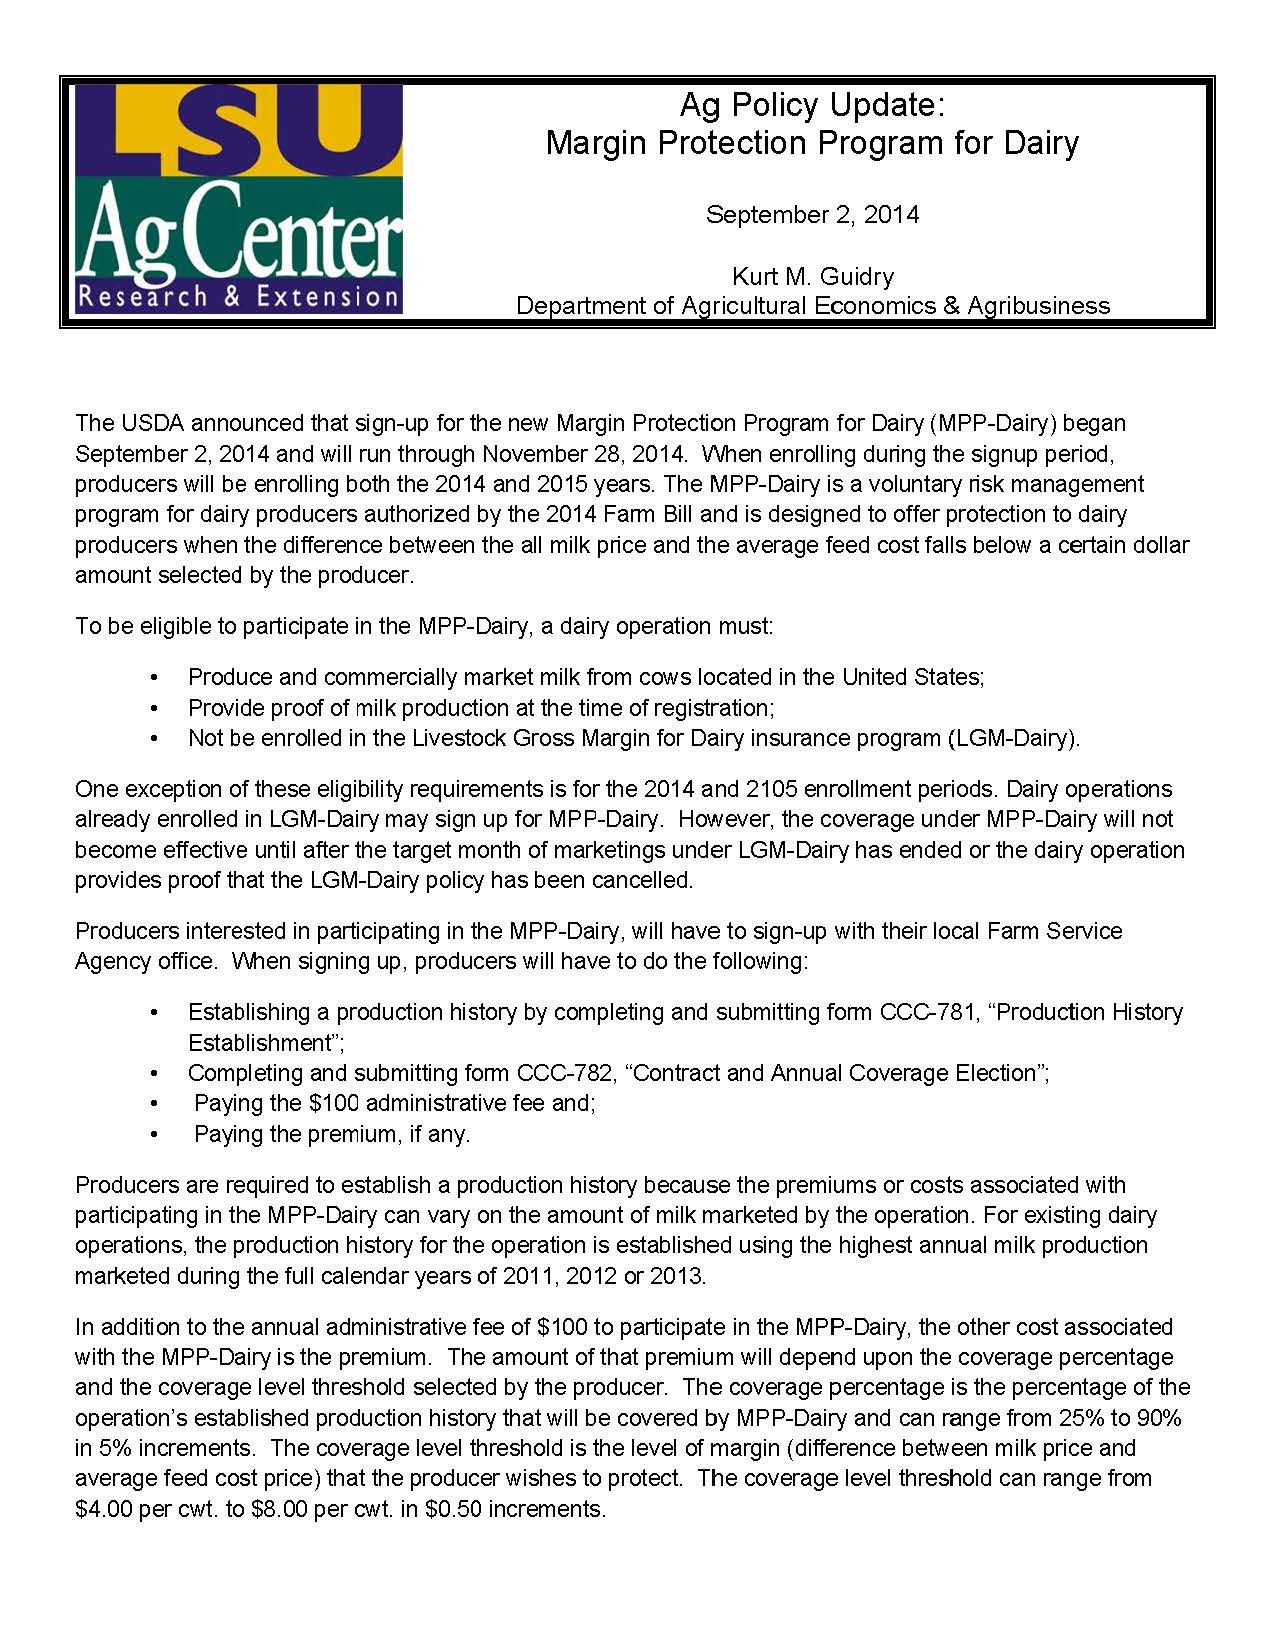 Ag Policy Update: Margin Protection Program for Dairy